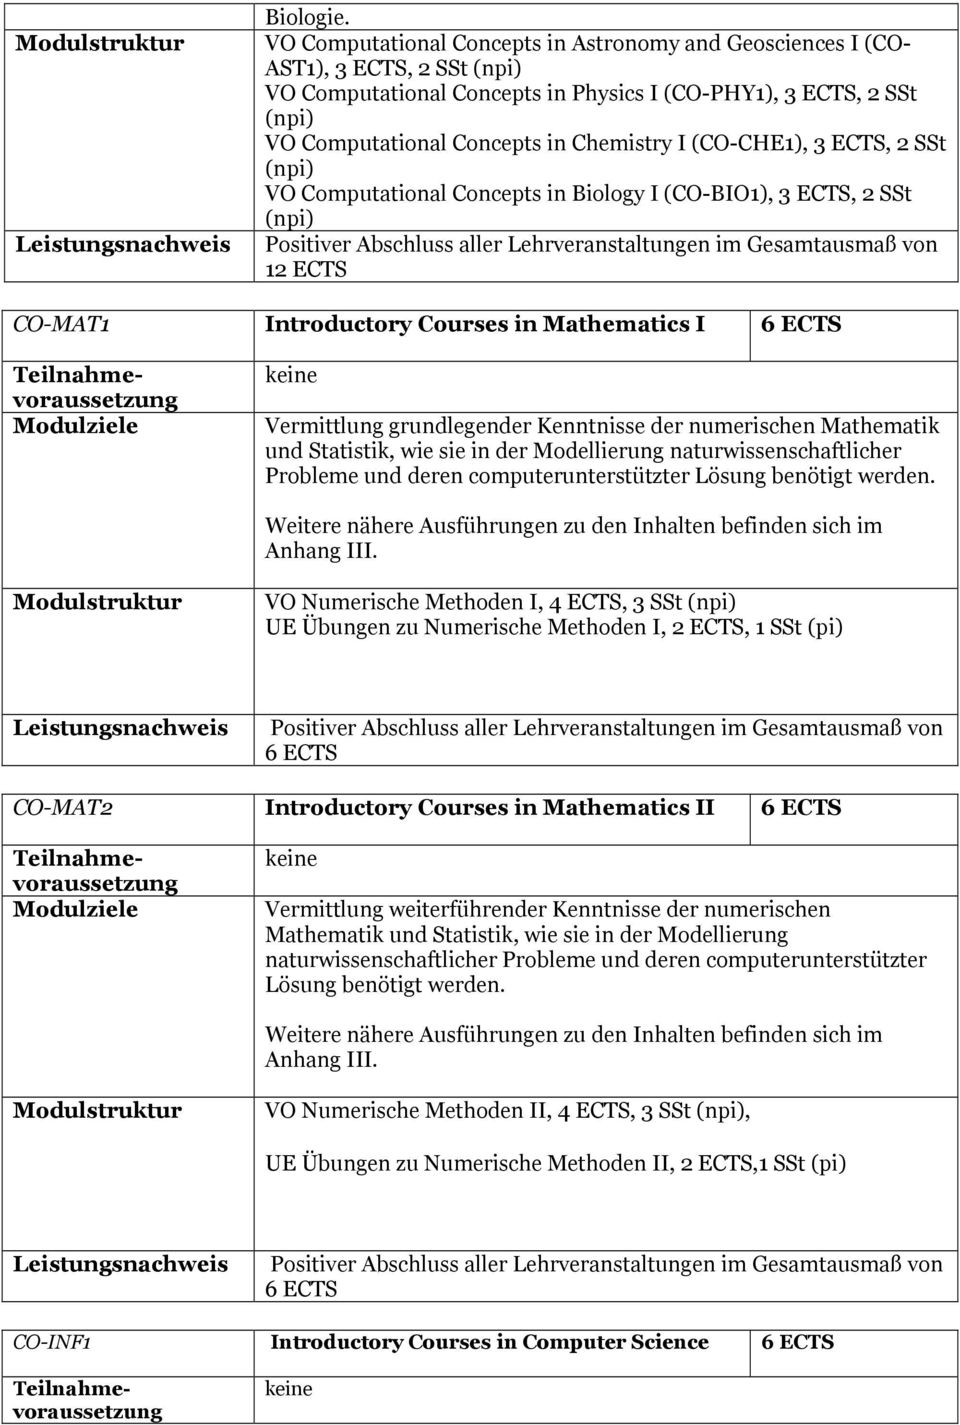 (CO-CHE1), 3 ECTS, 2 SSt (npi) VO Computational Concepts in Biology I (CO-BIO1), 3 ECTS, 2 SSt (npi) Positiver Abschluss aller Lehrveranstaltungen im Gesamtausmaß von 12 ECTS CO-MAT1 Introductory